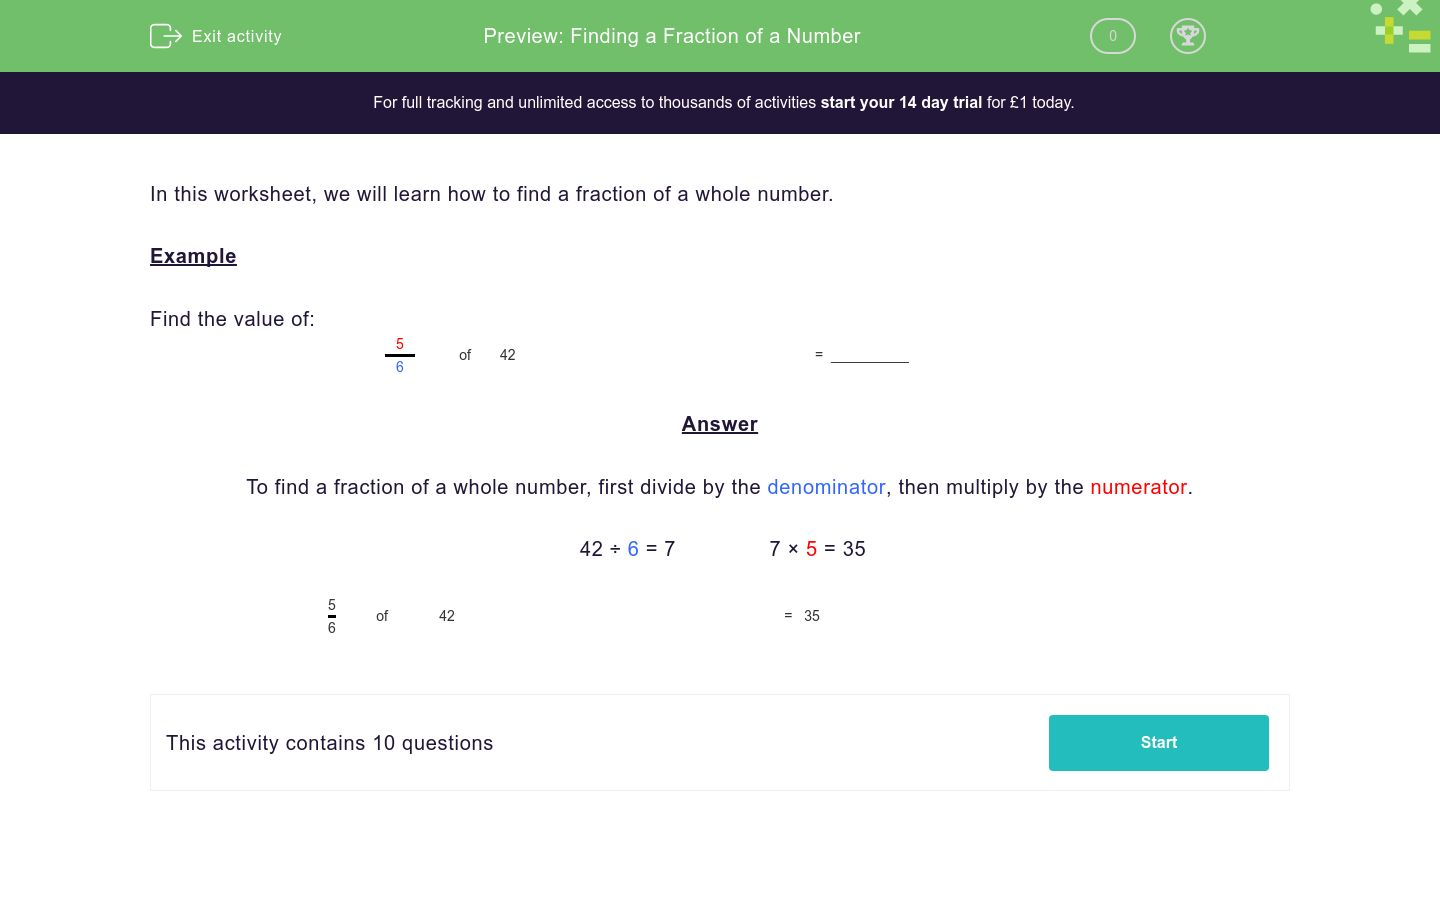 'Finding a Fraction of a Number' worksheet